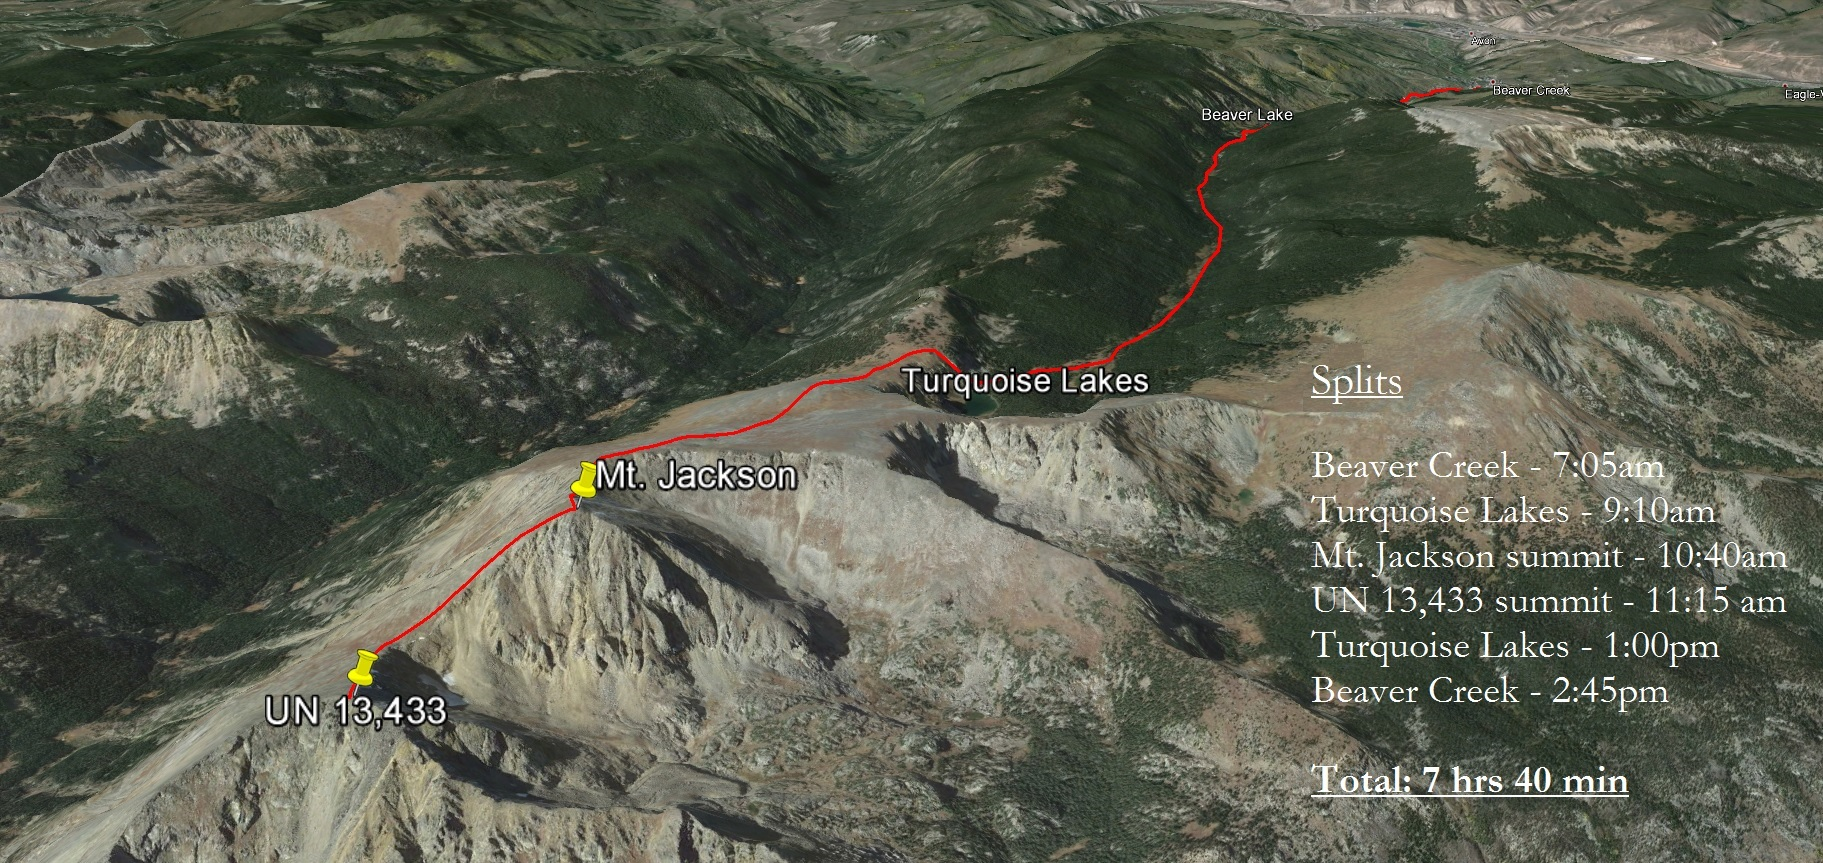 Route overview and time splits.